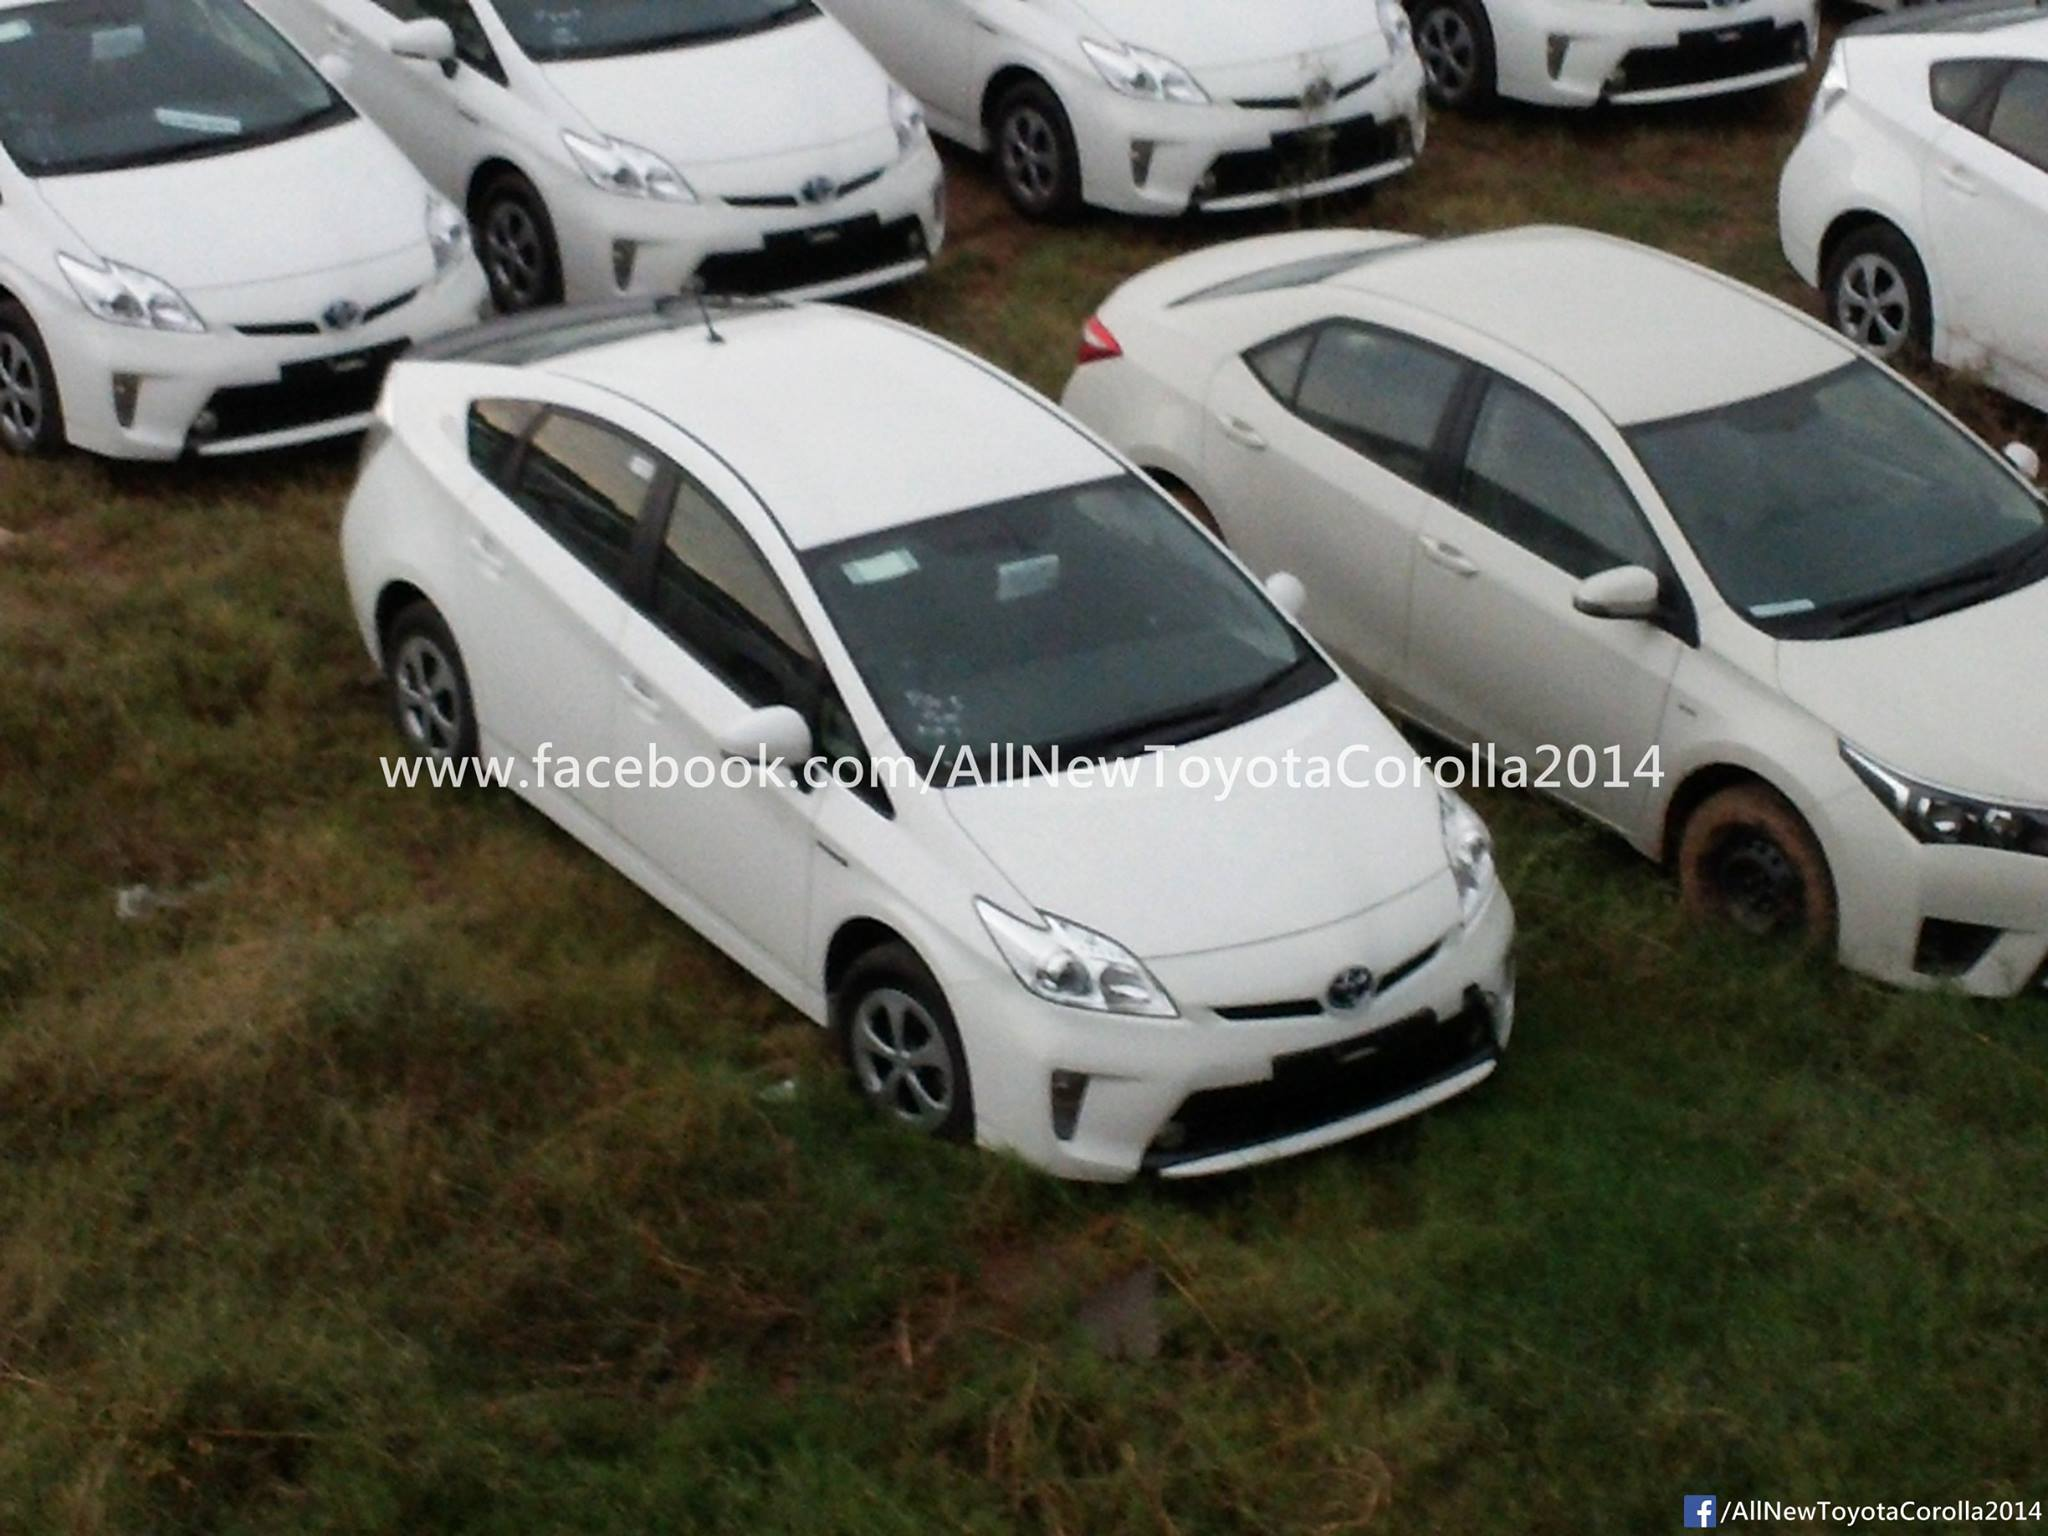 Toyota Prius donated by JAPAN (1)